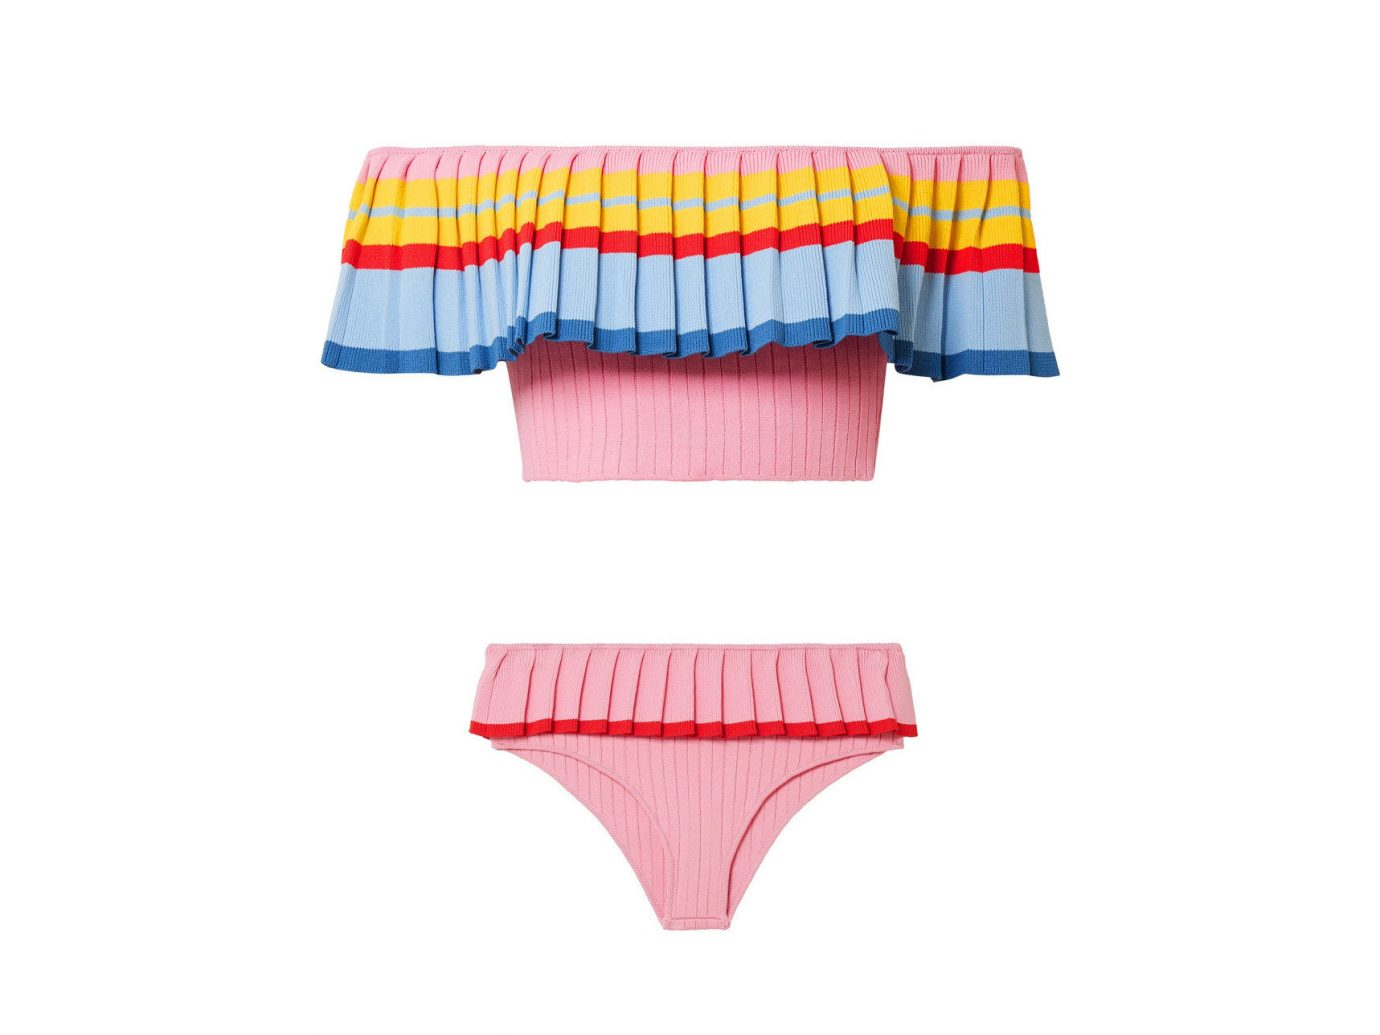 Style + Design Travel Shop pink briefs undergarment swimsuit bottom underpants product angle